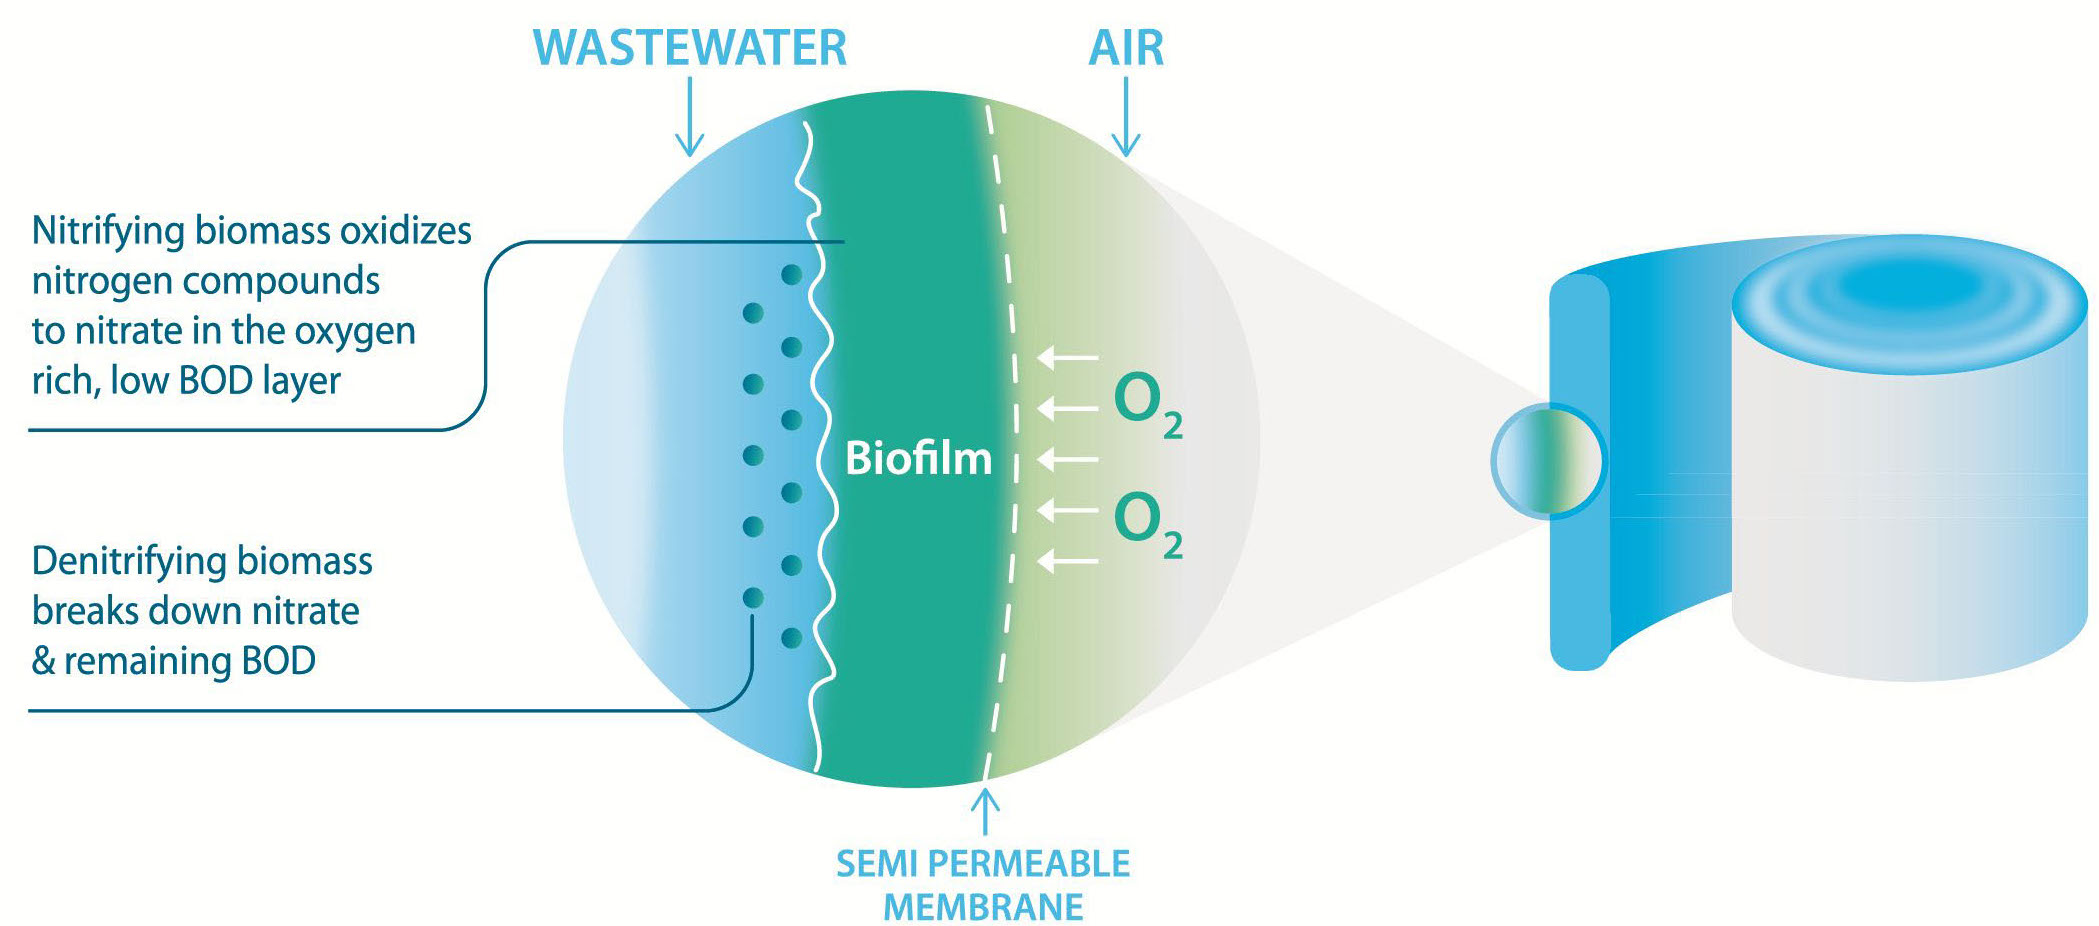 Simultaneous Nitrification and Denitrification